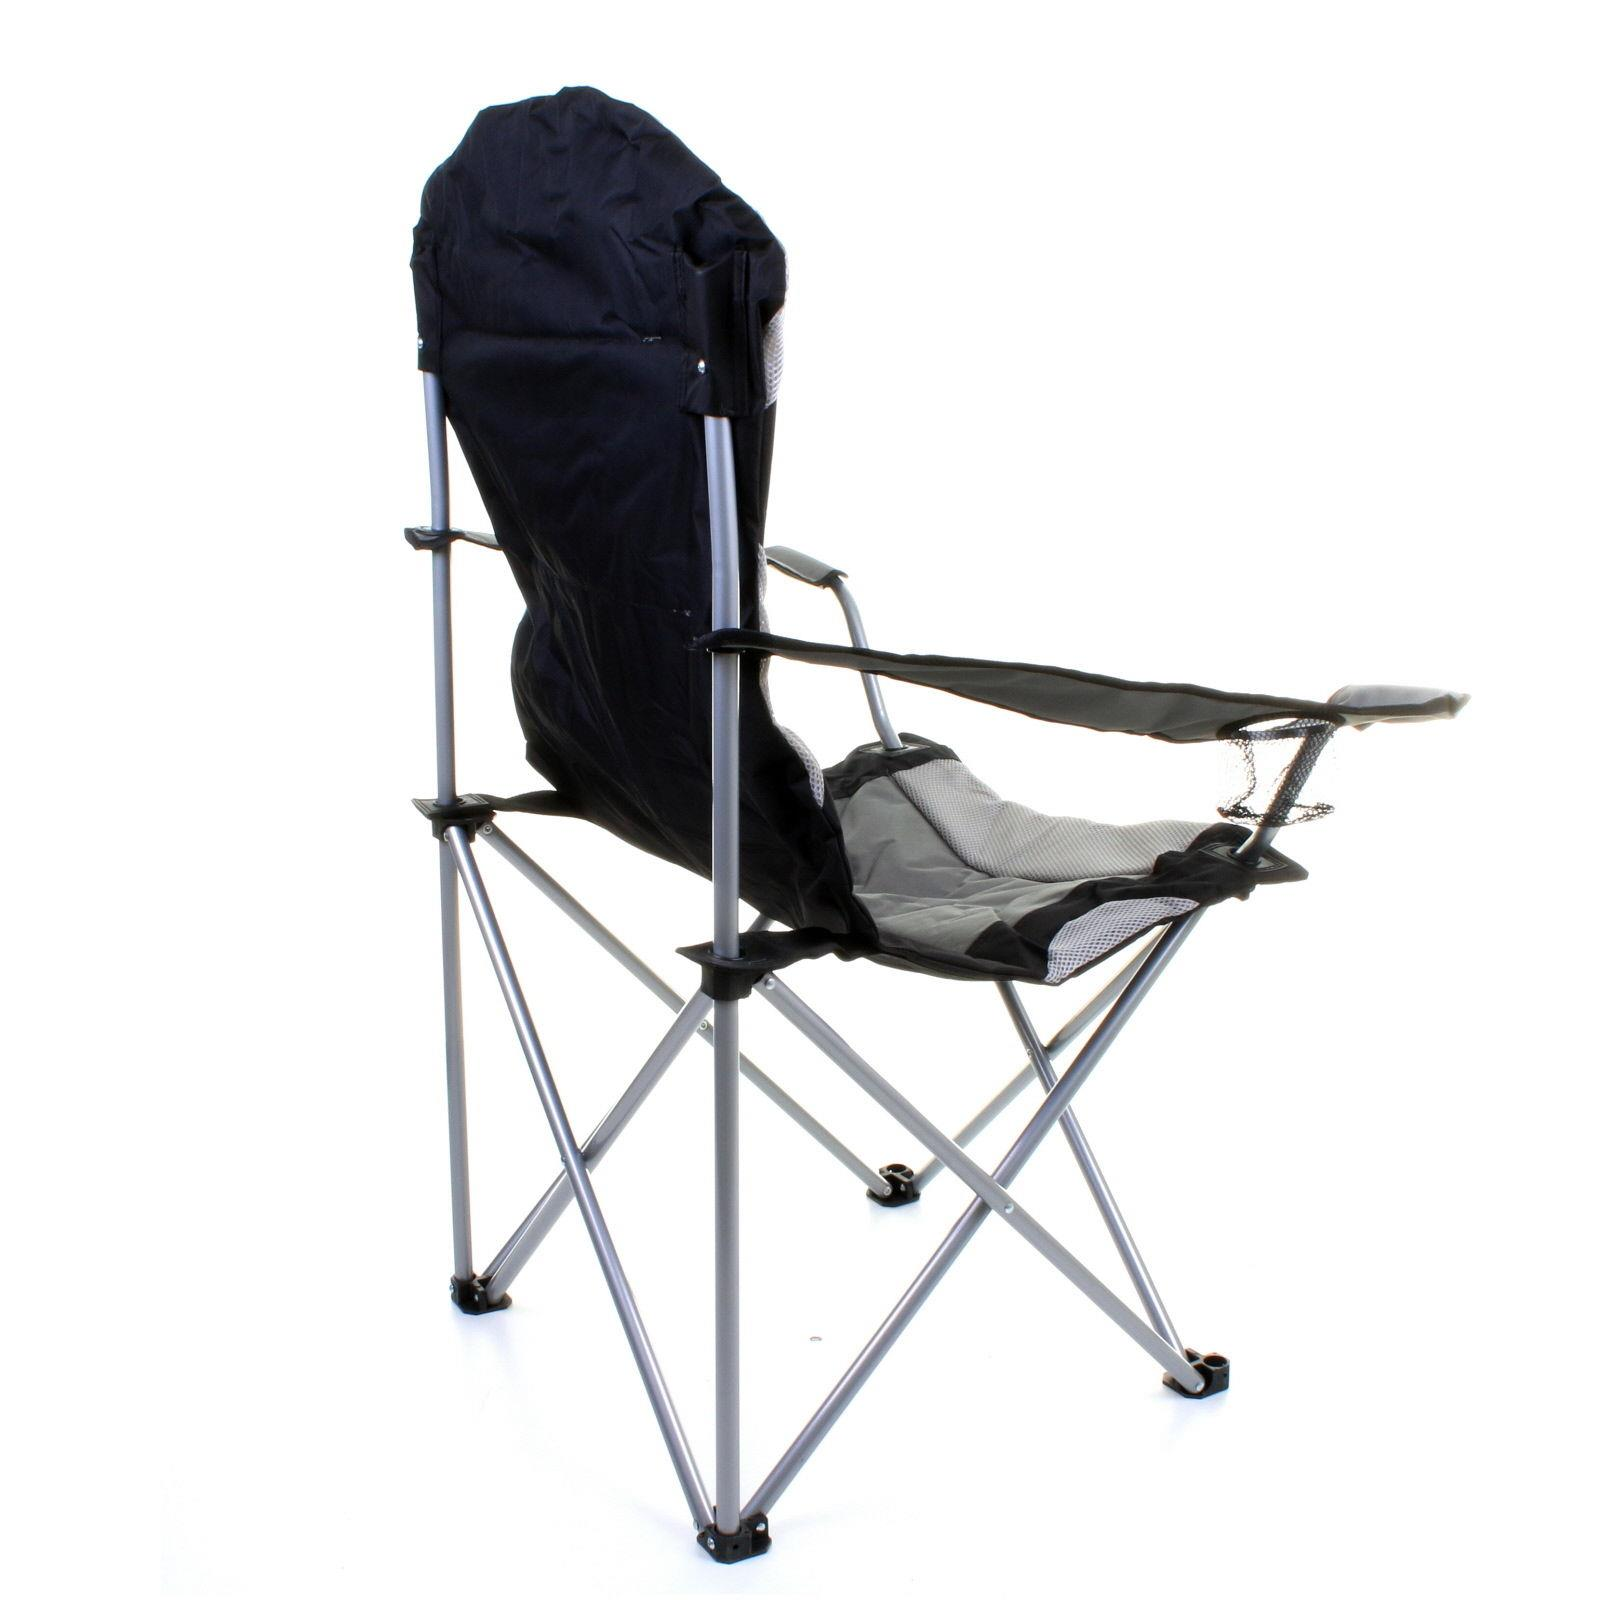 thumbnail 9 - Folding Camping Deluxe Chairs Heavy Duty Luxury Padded with Cup Holder High Back